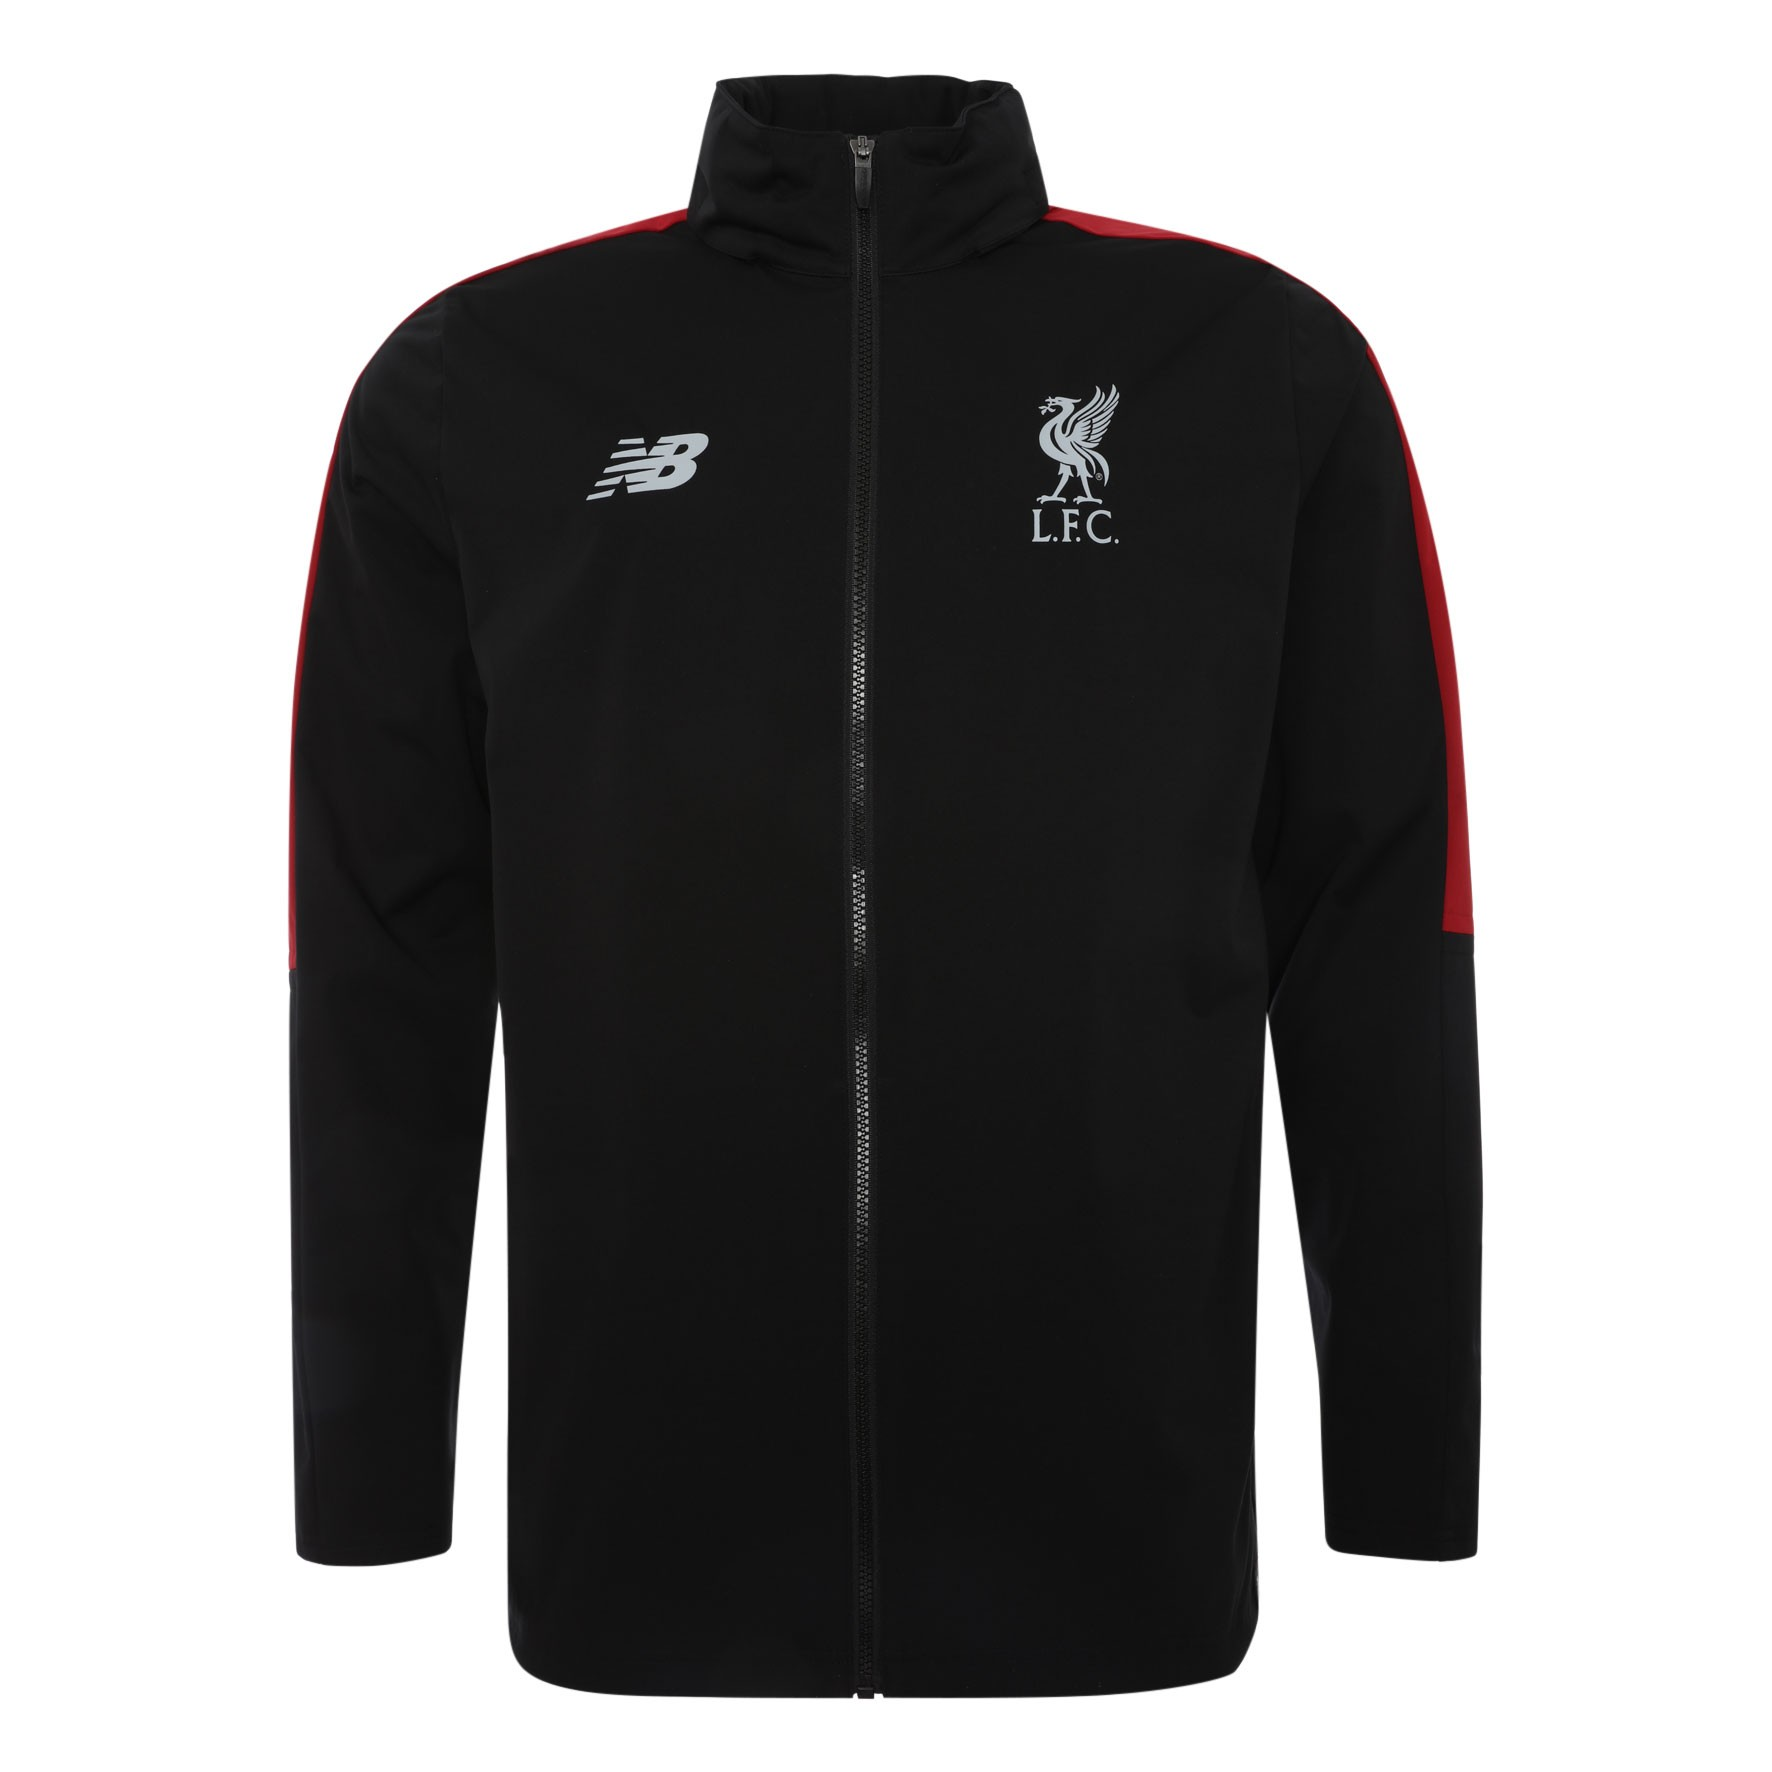 LFC Mens Black Training Precision Rain Jacket 18/19